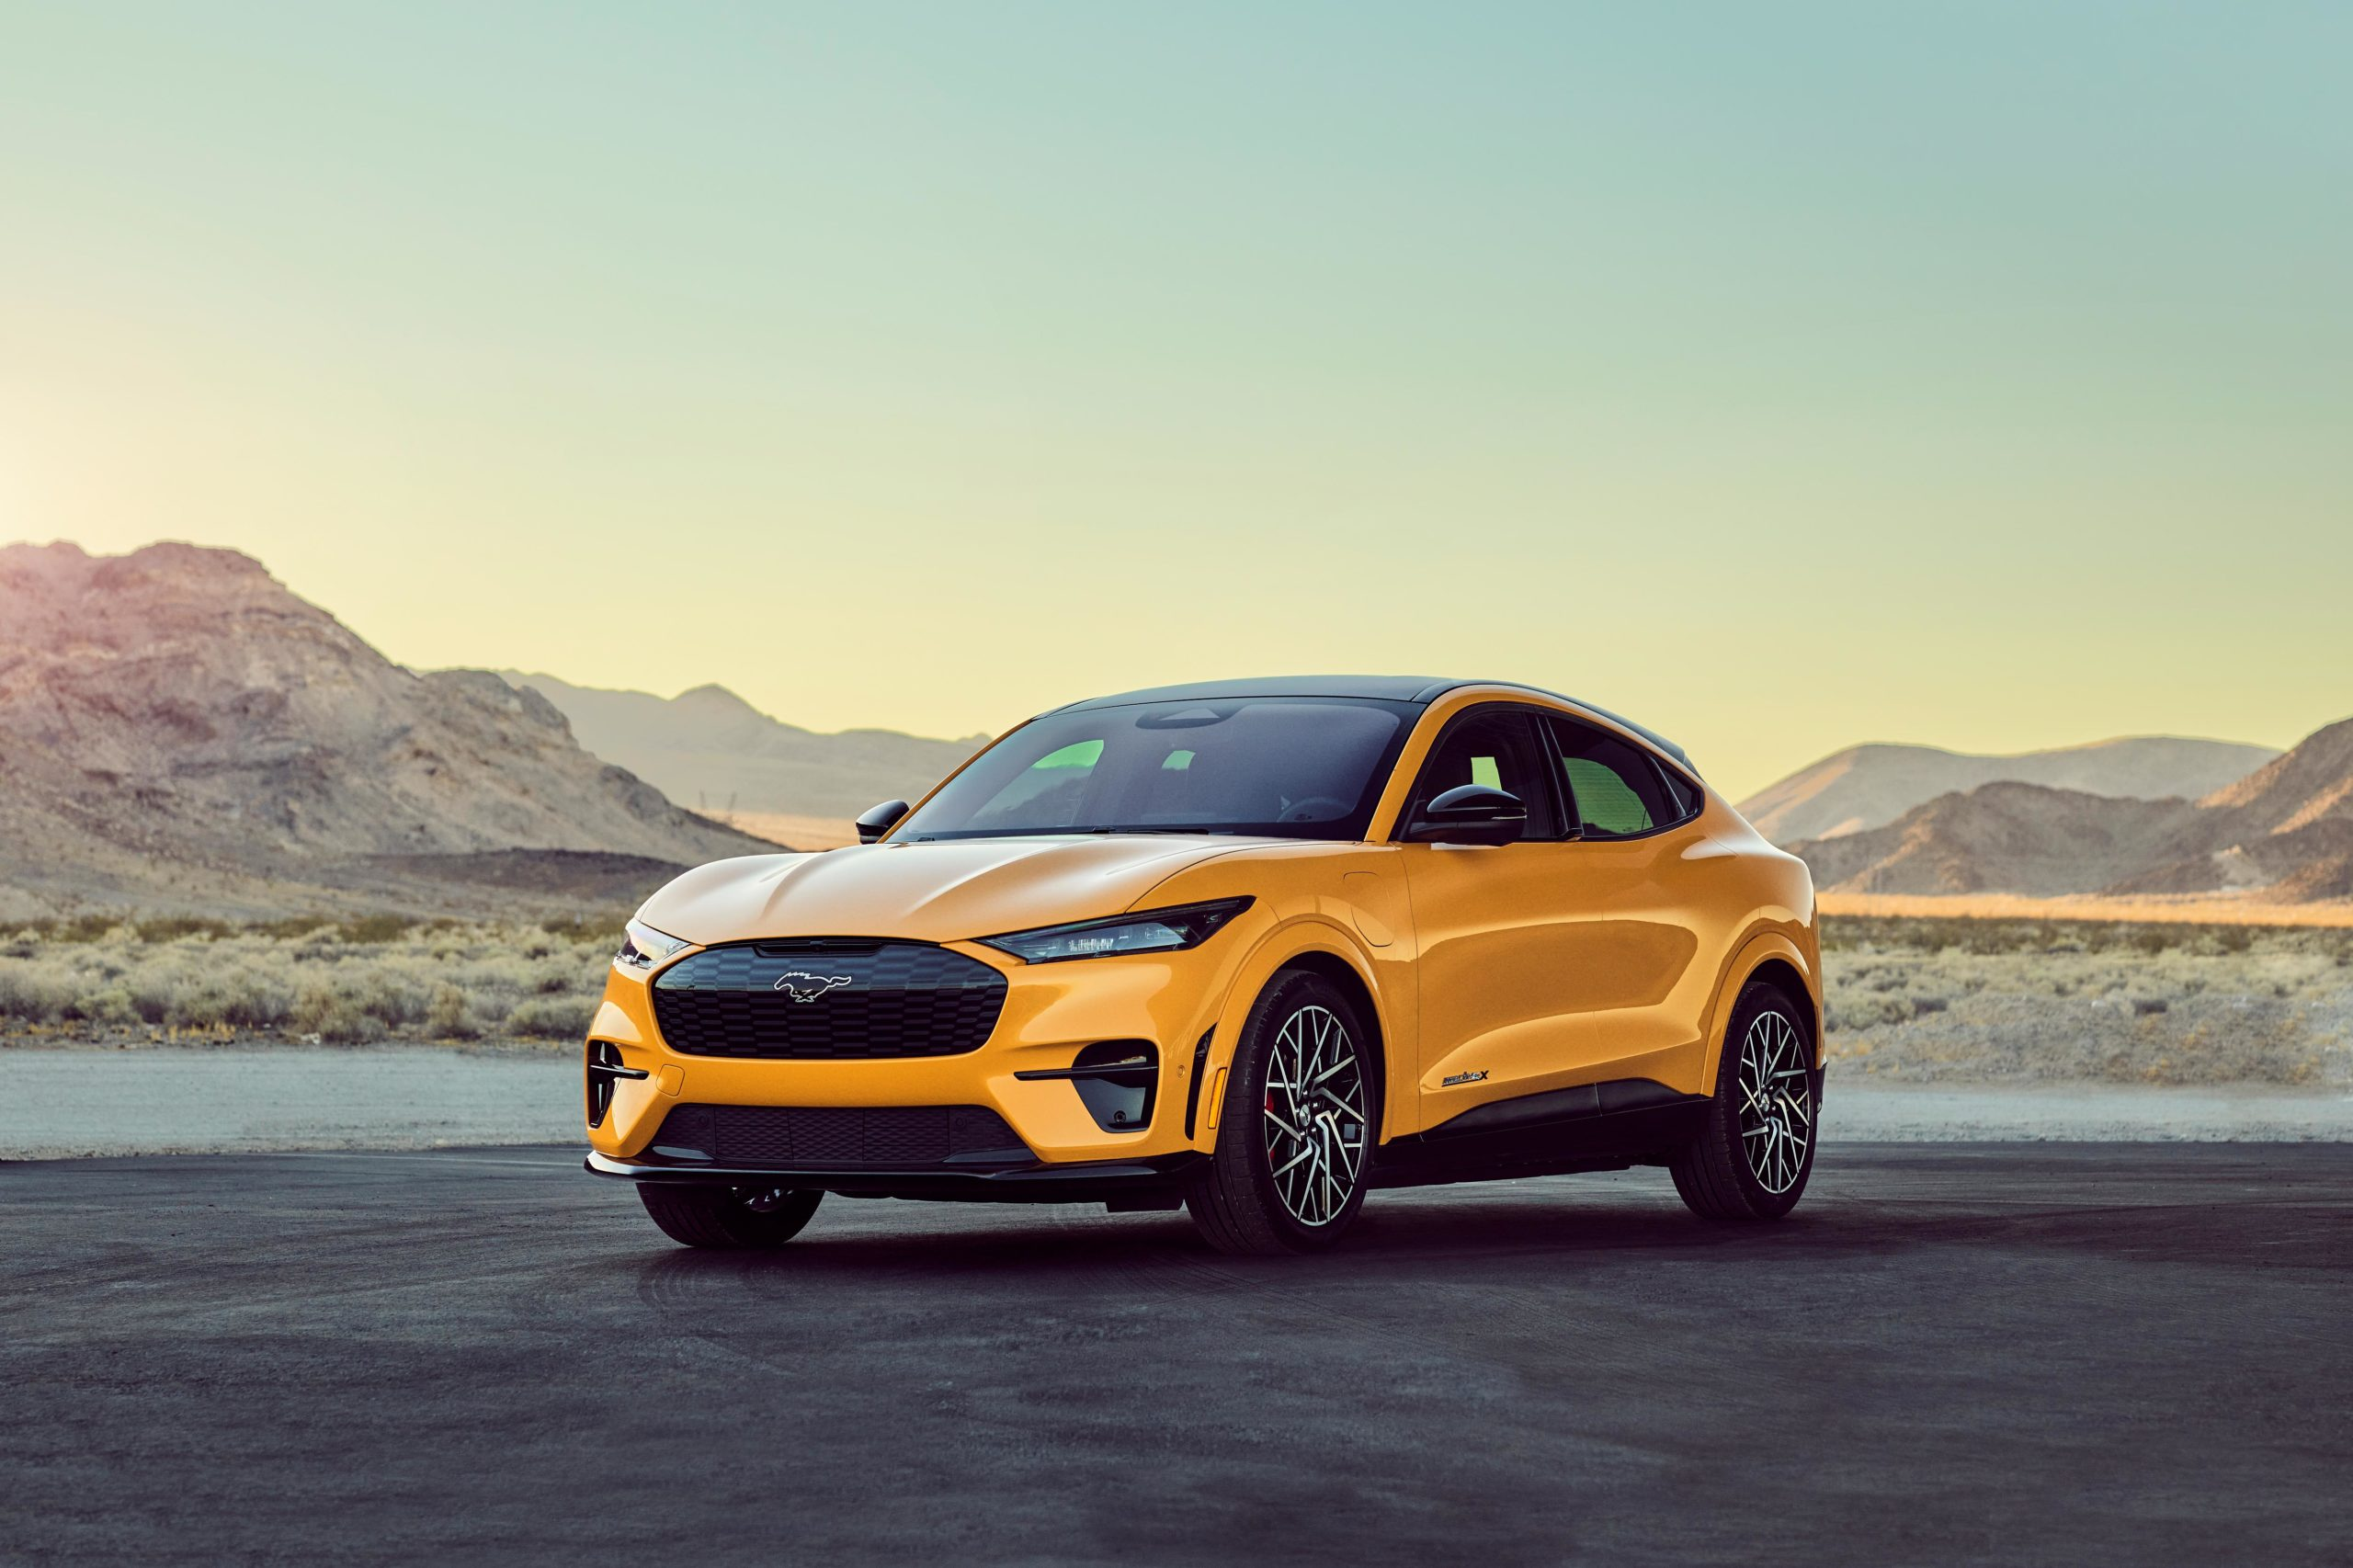 Mustang electric vehicle crossover suv performance